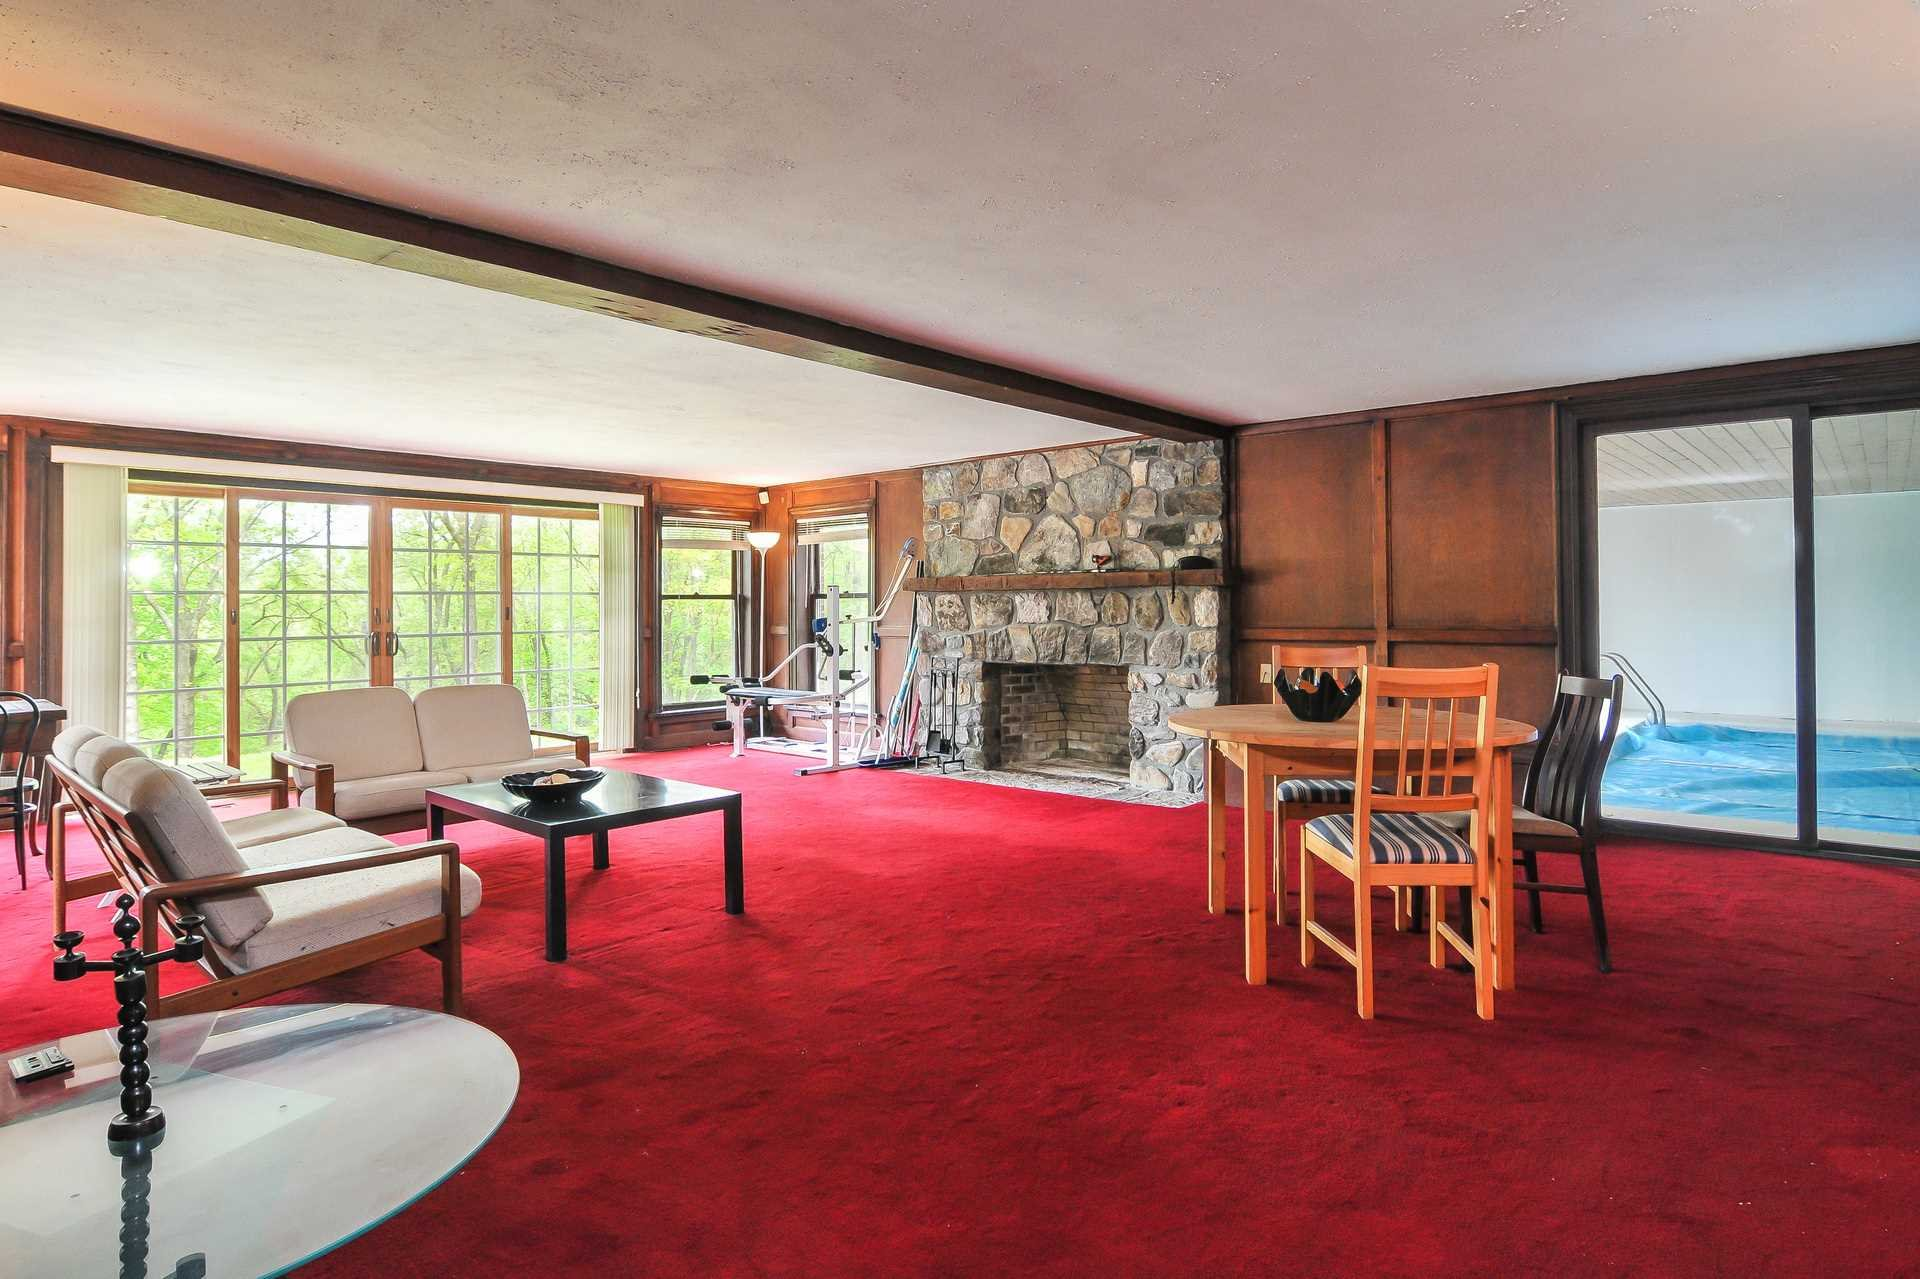 Additional photo for property listing at 527 NORTH QUAKER HILL 527 NORTH QUAKER HILL Pawling, New York 12564 United States